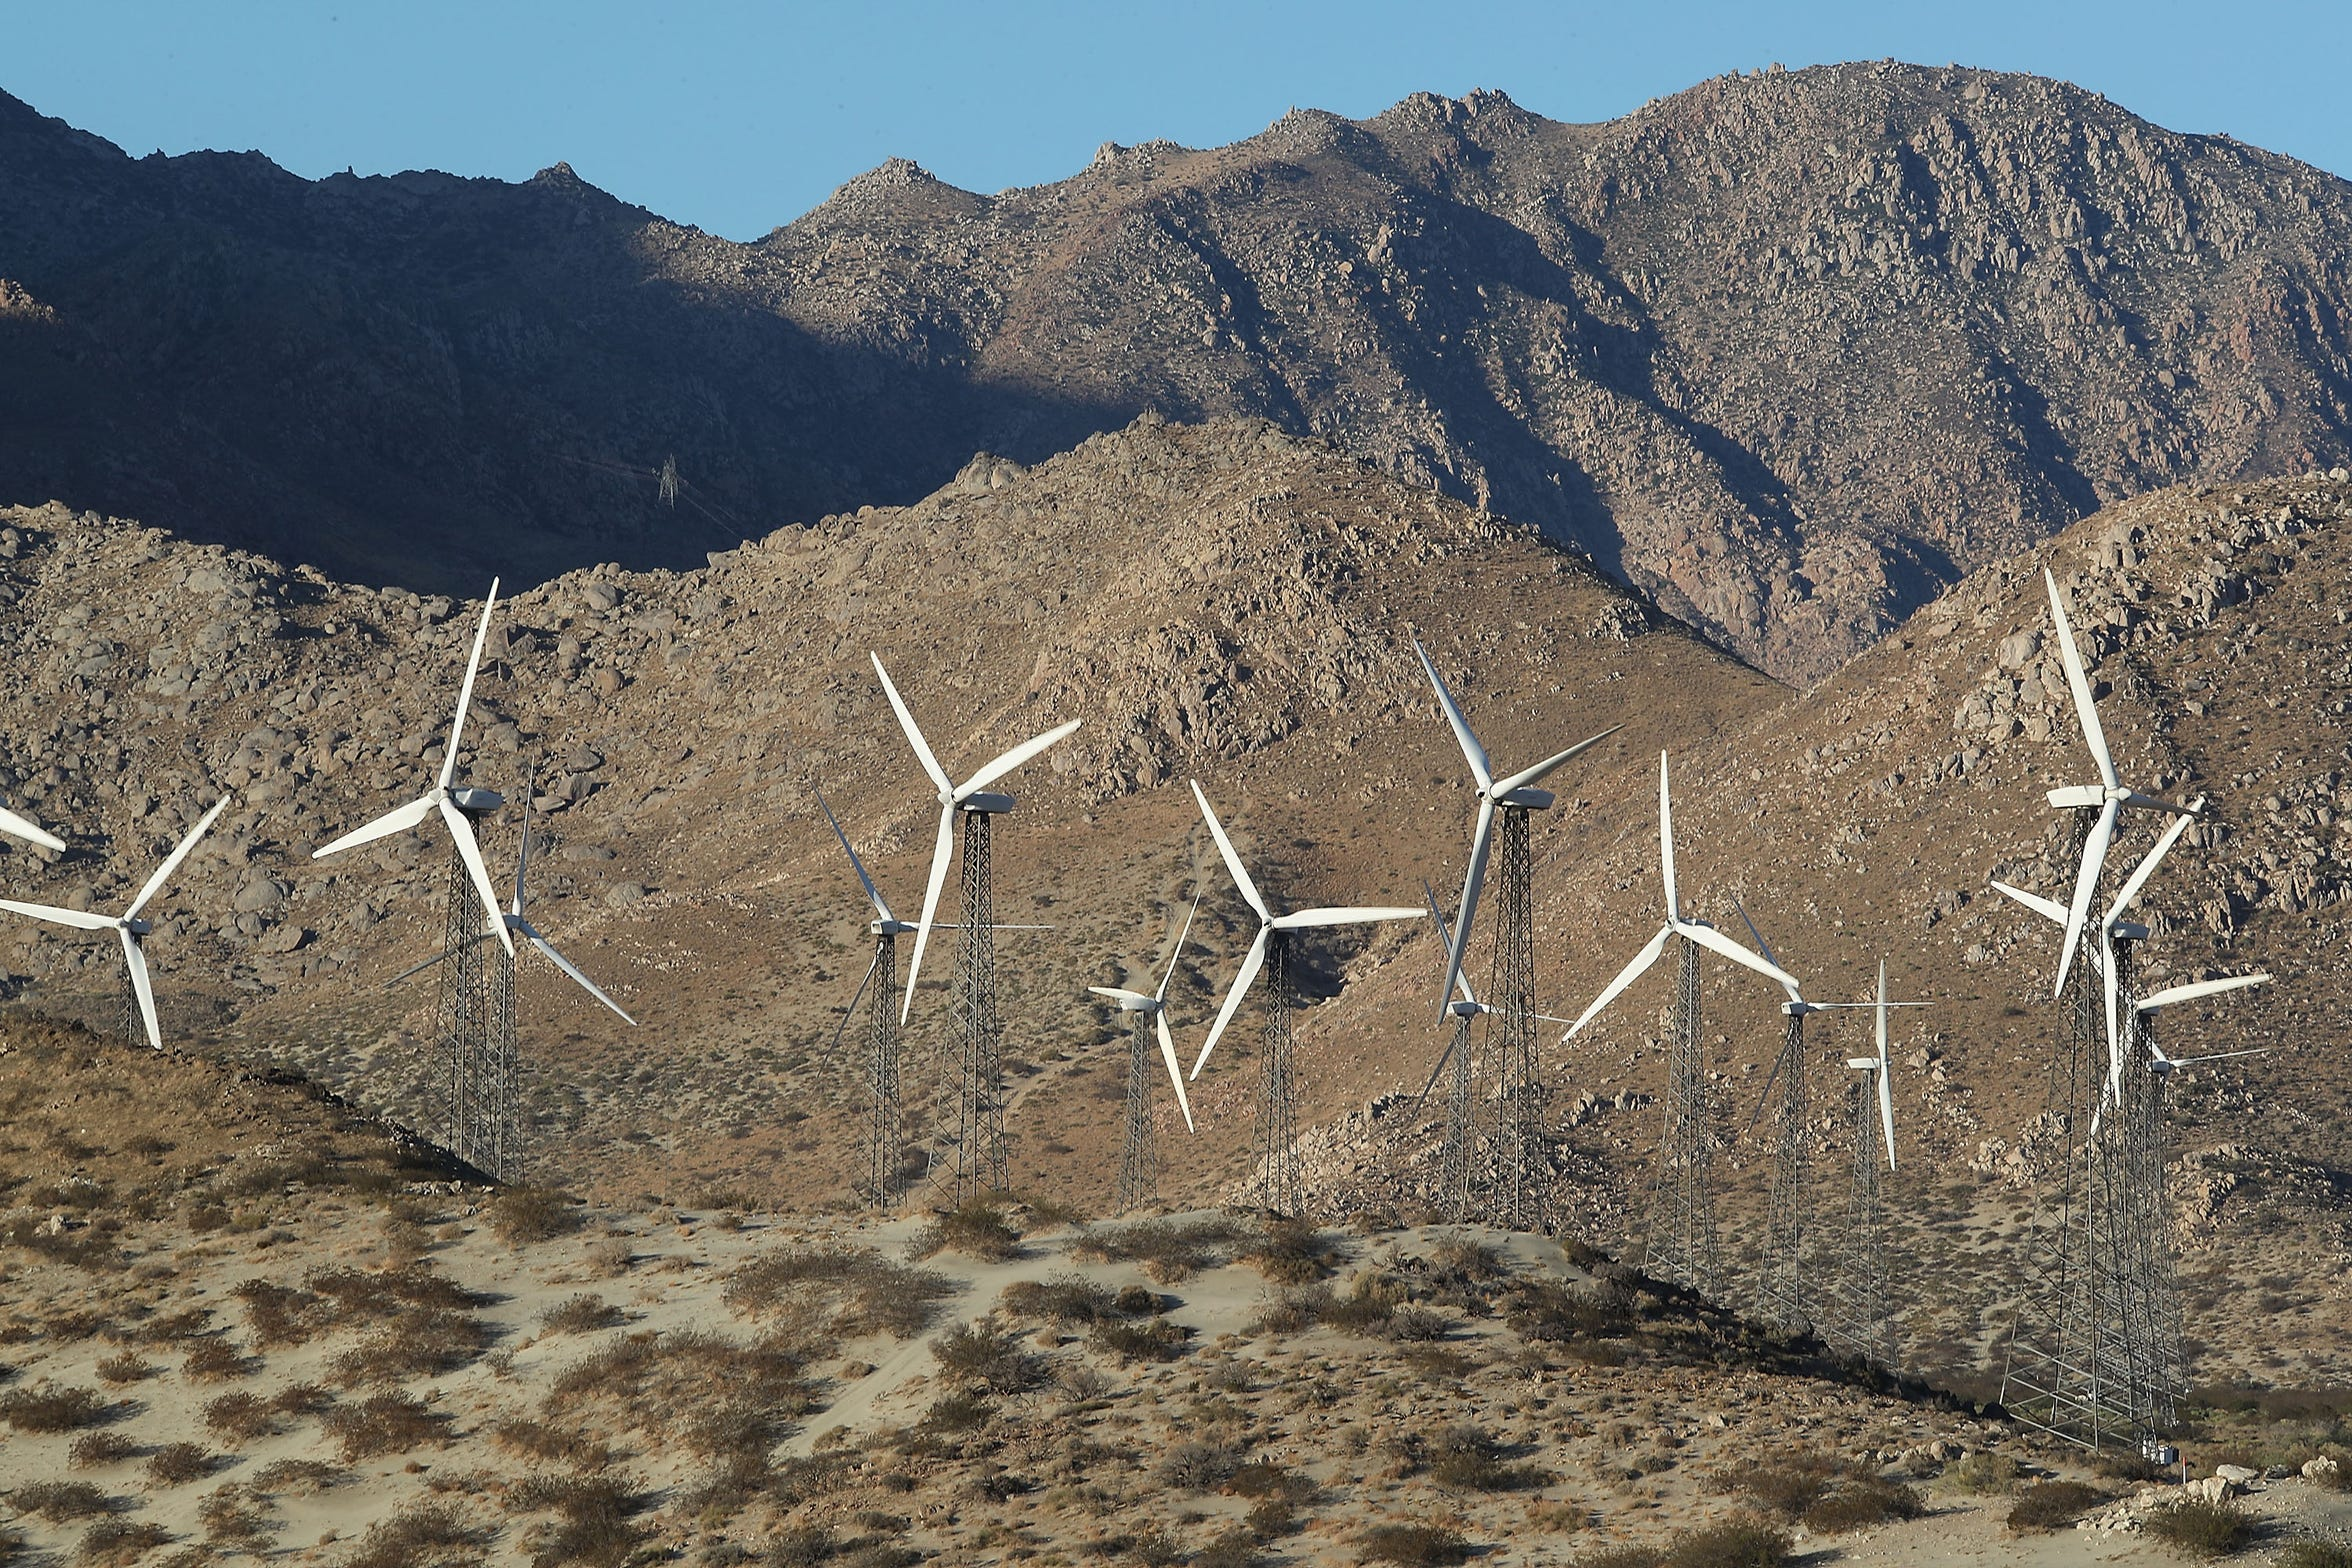 Older wind turbines with steel lattice towers, built in 1985 and owned by Fred Noble's Wintec Energy, spin in the San Gorgonio Pass on Oct. 18, 2018.